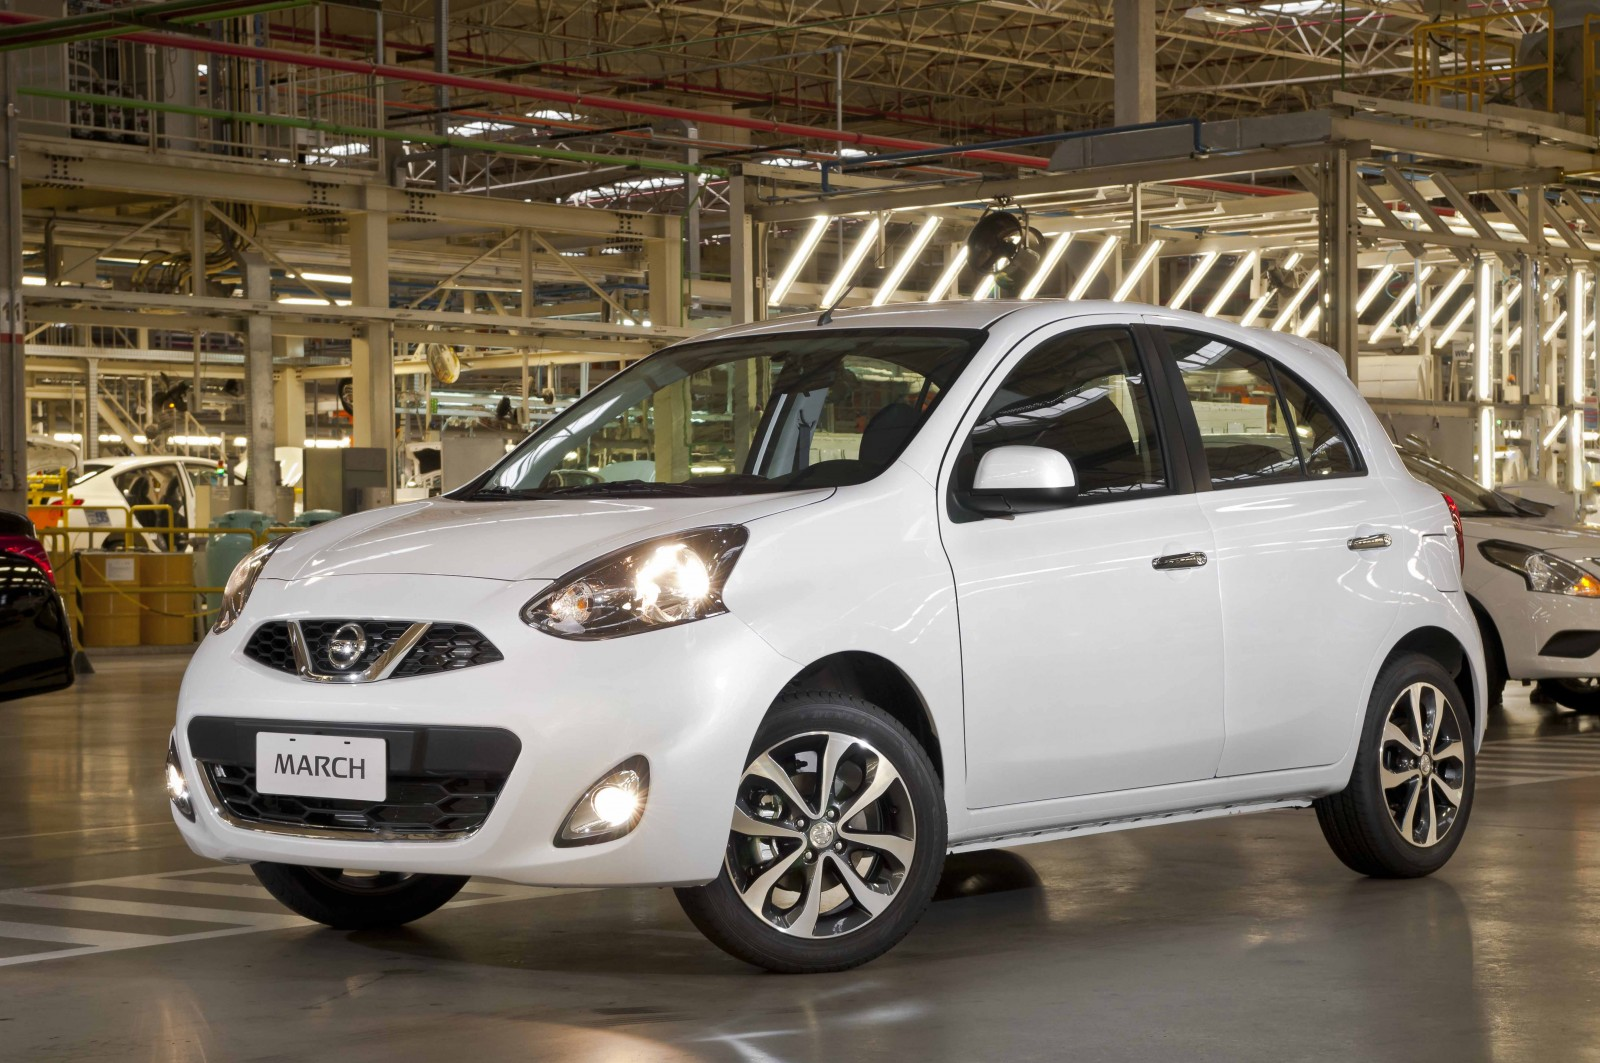 nissan versa with Os Dez Automaticos Mais Baratos Brasil on 126598 in addition Manuales Nissan additionally Wildfires Caused By Global Warming furthermore 2016 Nissan Versa Note Overview C25219 further Nissan Versa Advance 2016.